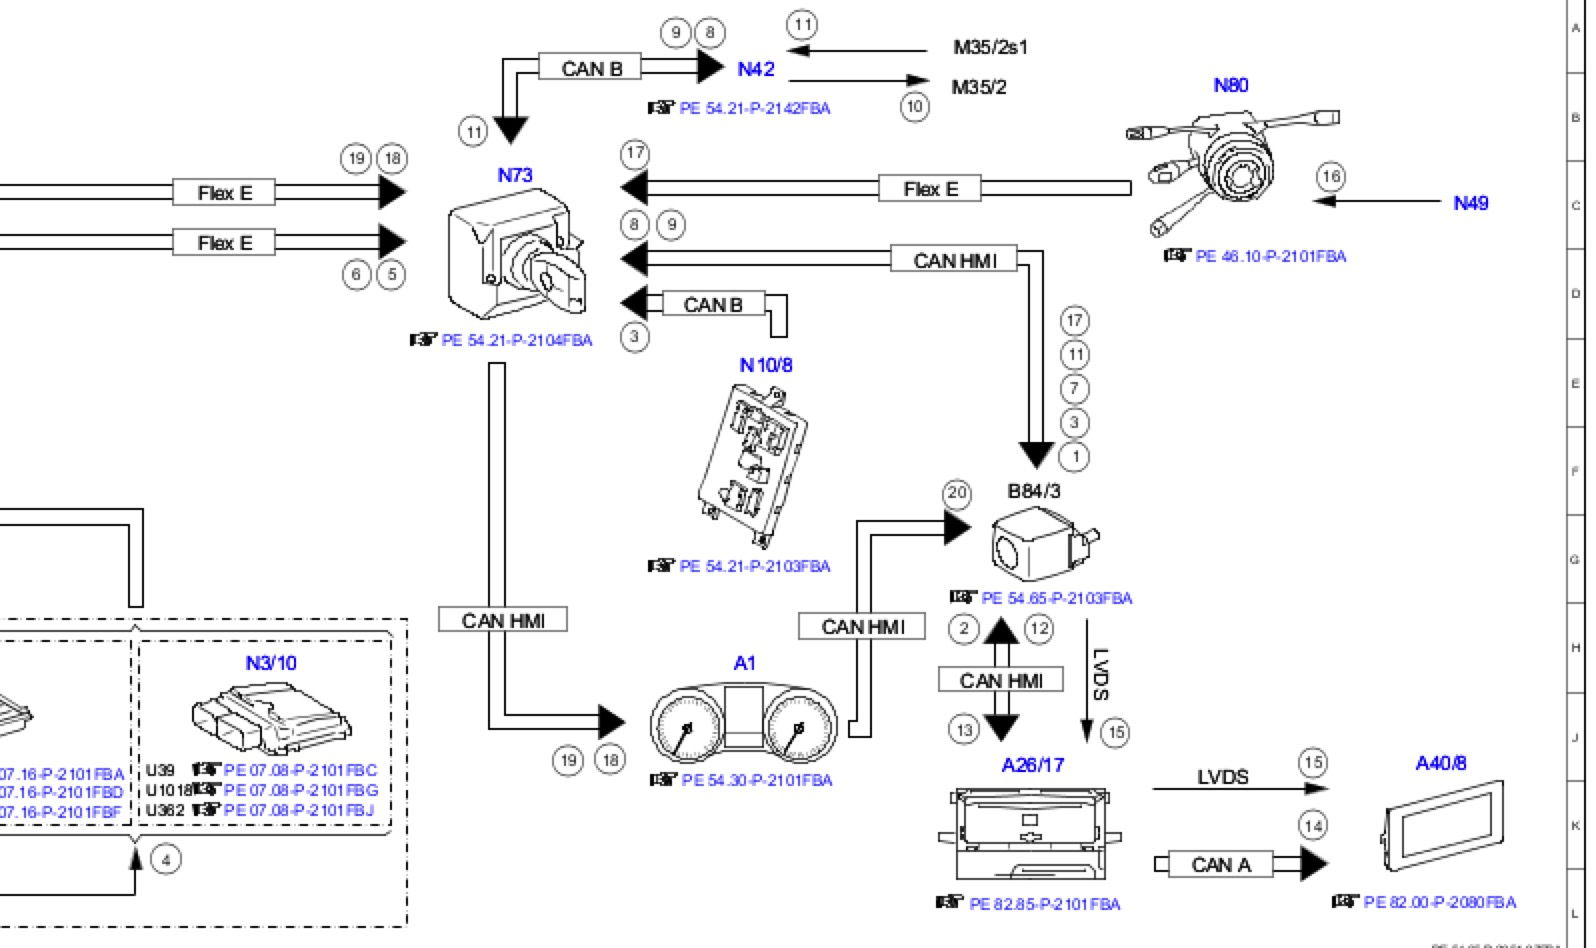 cmos camera board schematic camera board schematic